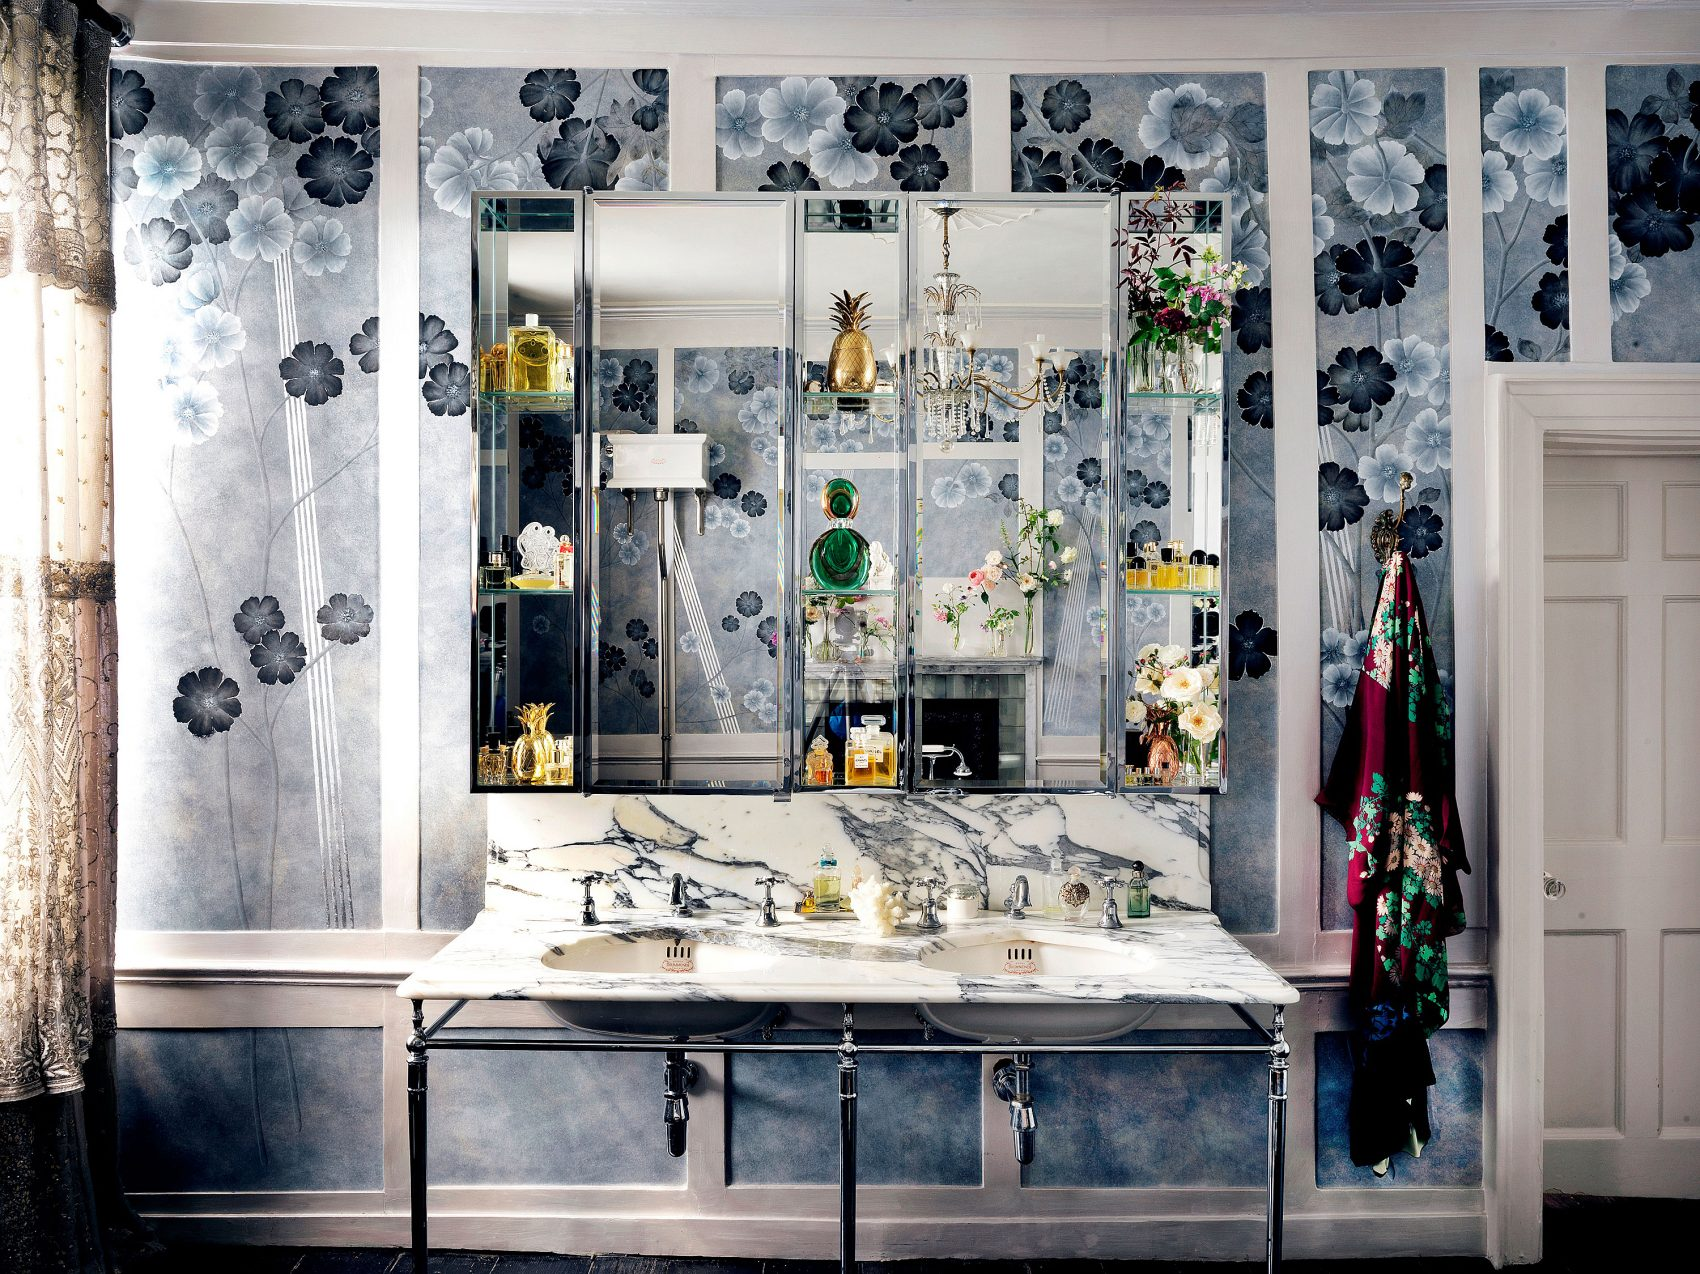 de-Gournay-with-Kate-Moss-hand-painted-Anemones-in-Light-wallpaper-Dusk-colourway-Iow-1700x1274.jpg